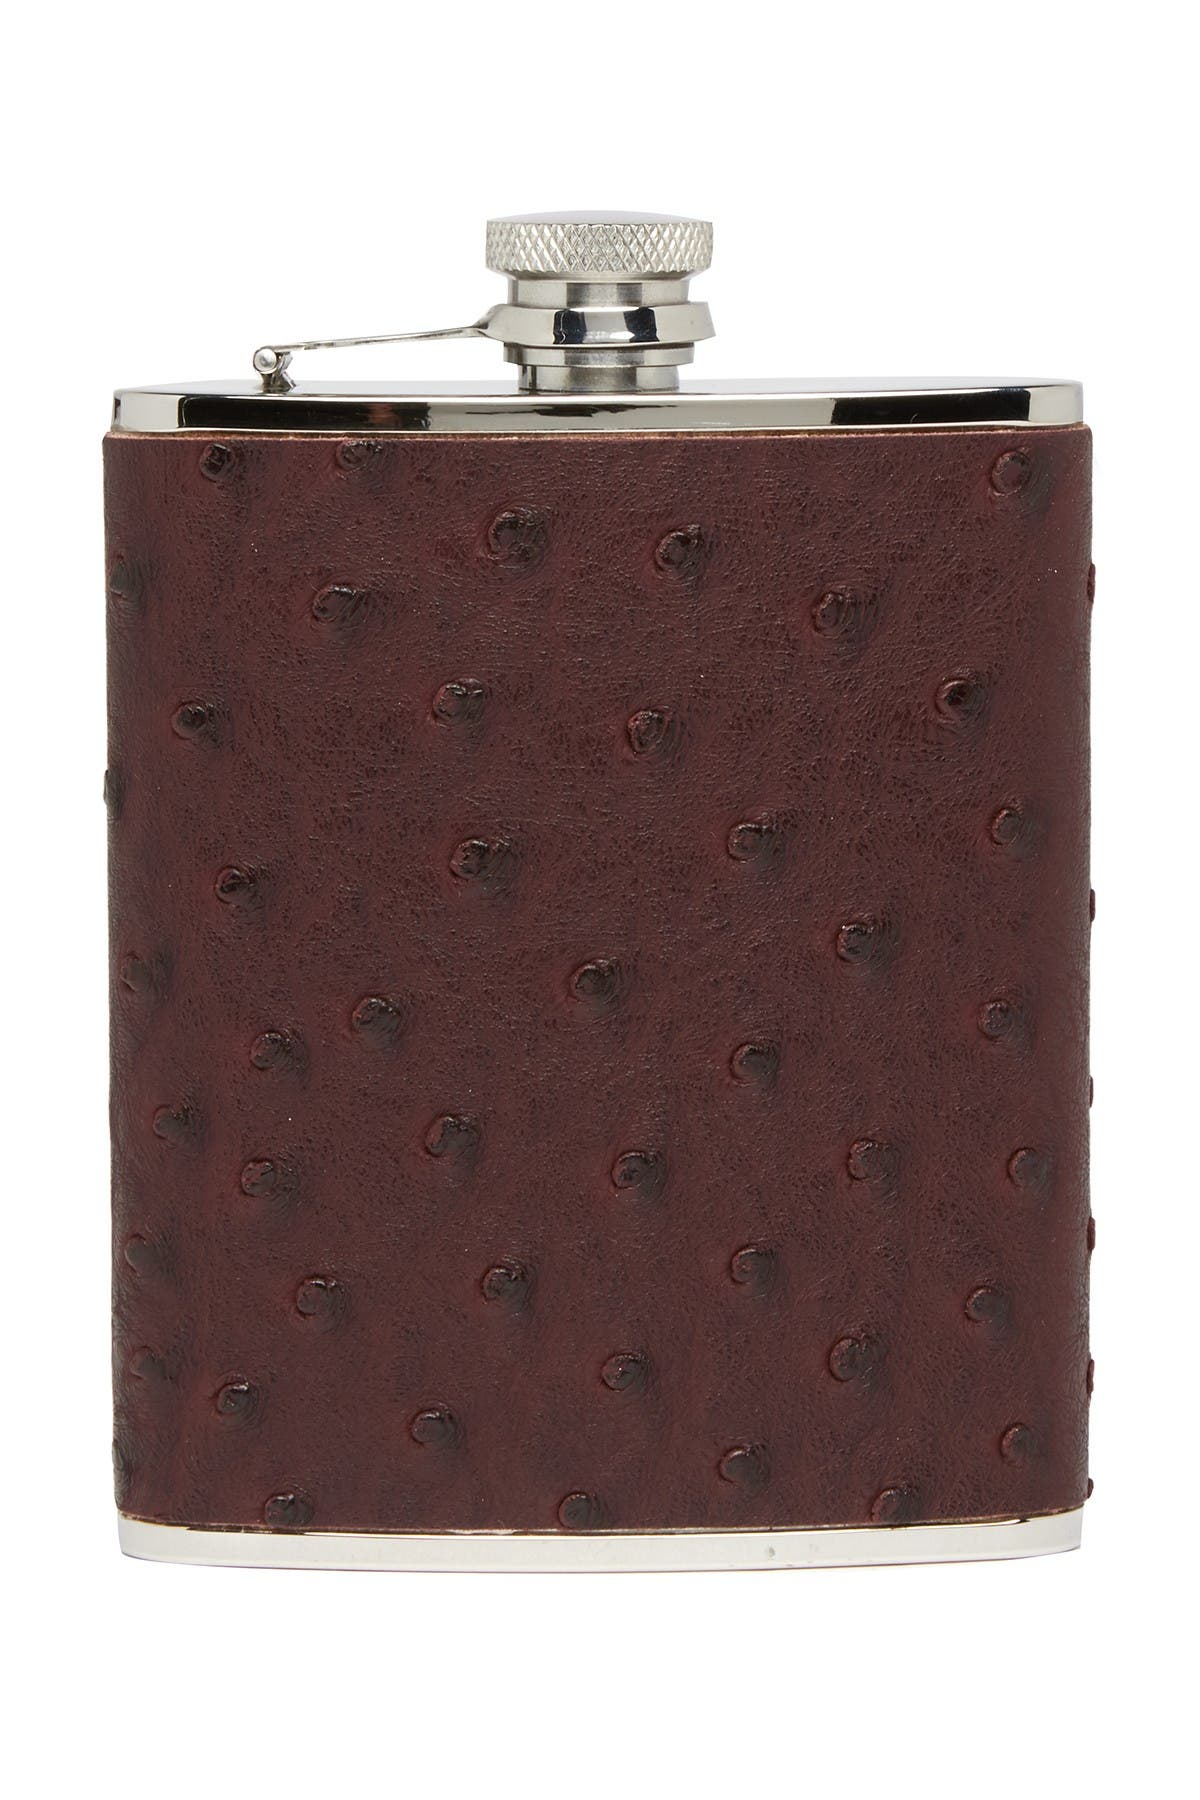 Image of Brouk & Co The Sharp Canteen Flask